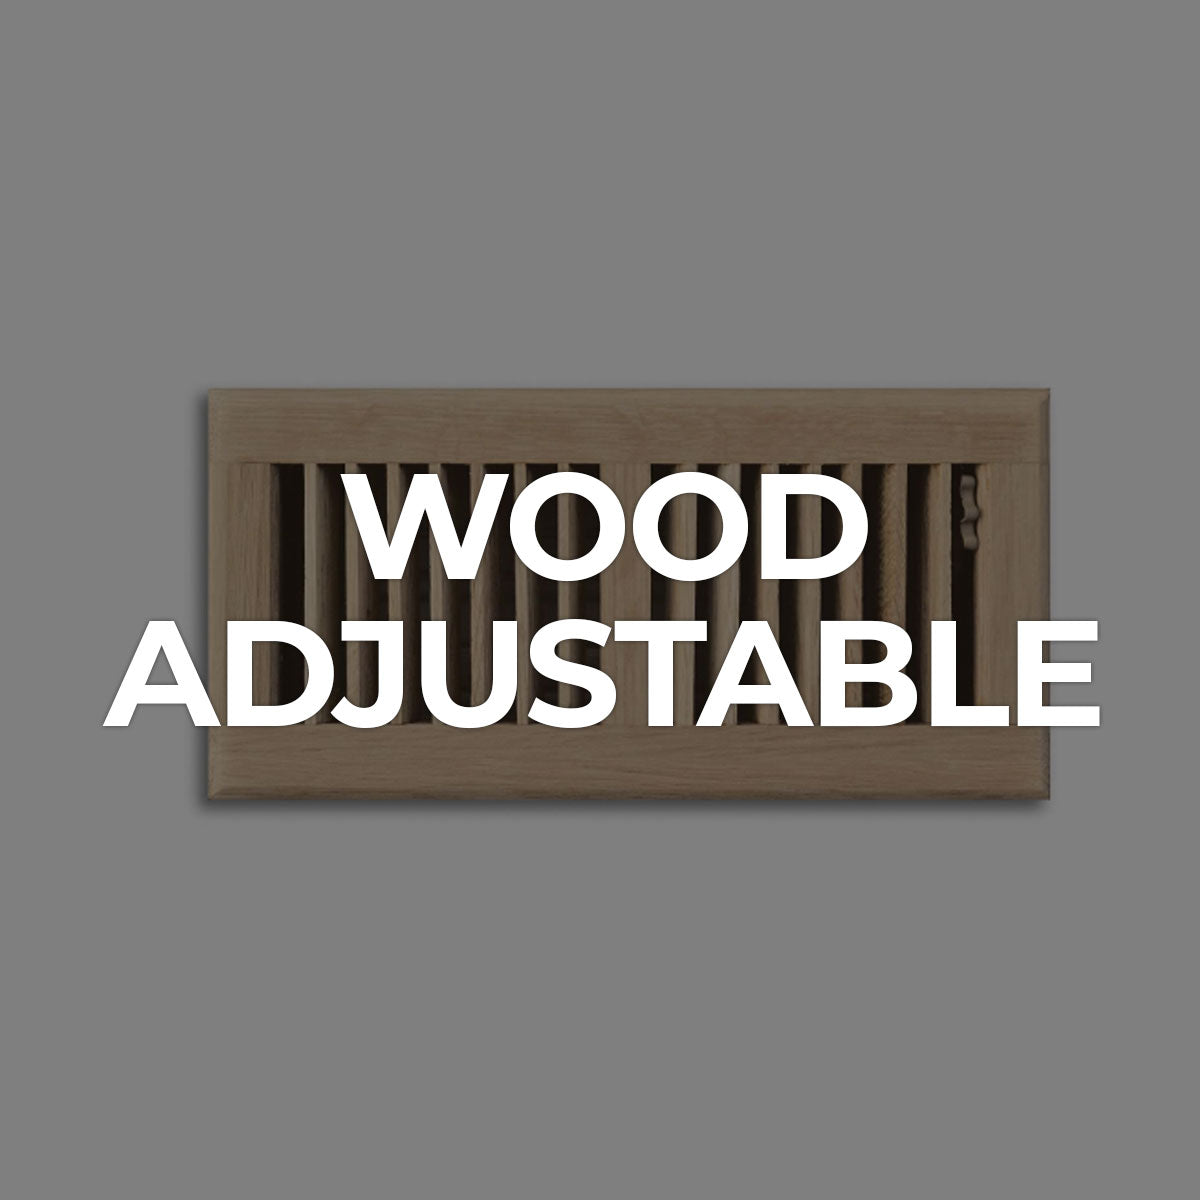 Supply / Wood Adjustable